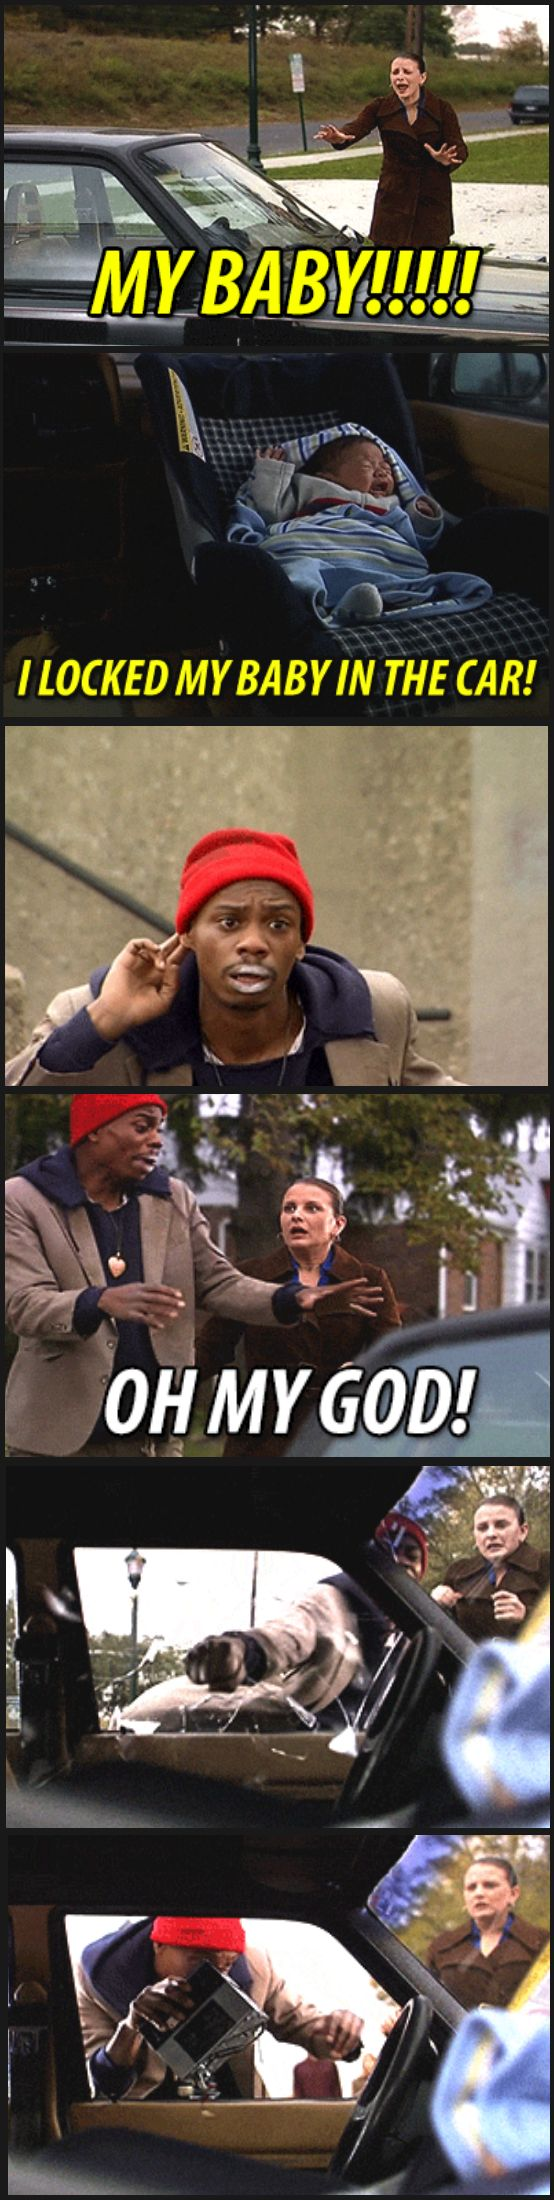 Chappelle Show #funny #lol #humor